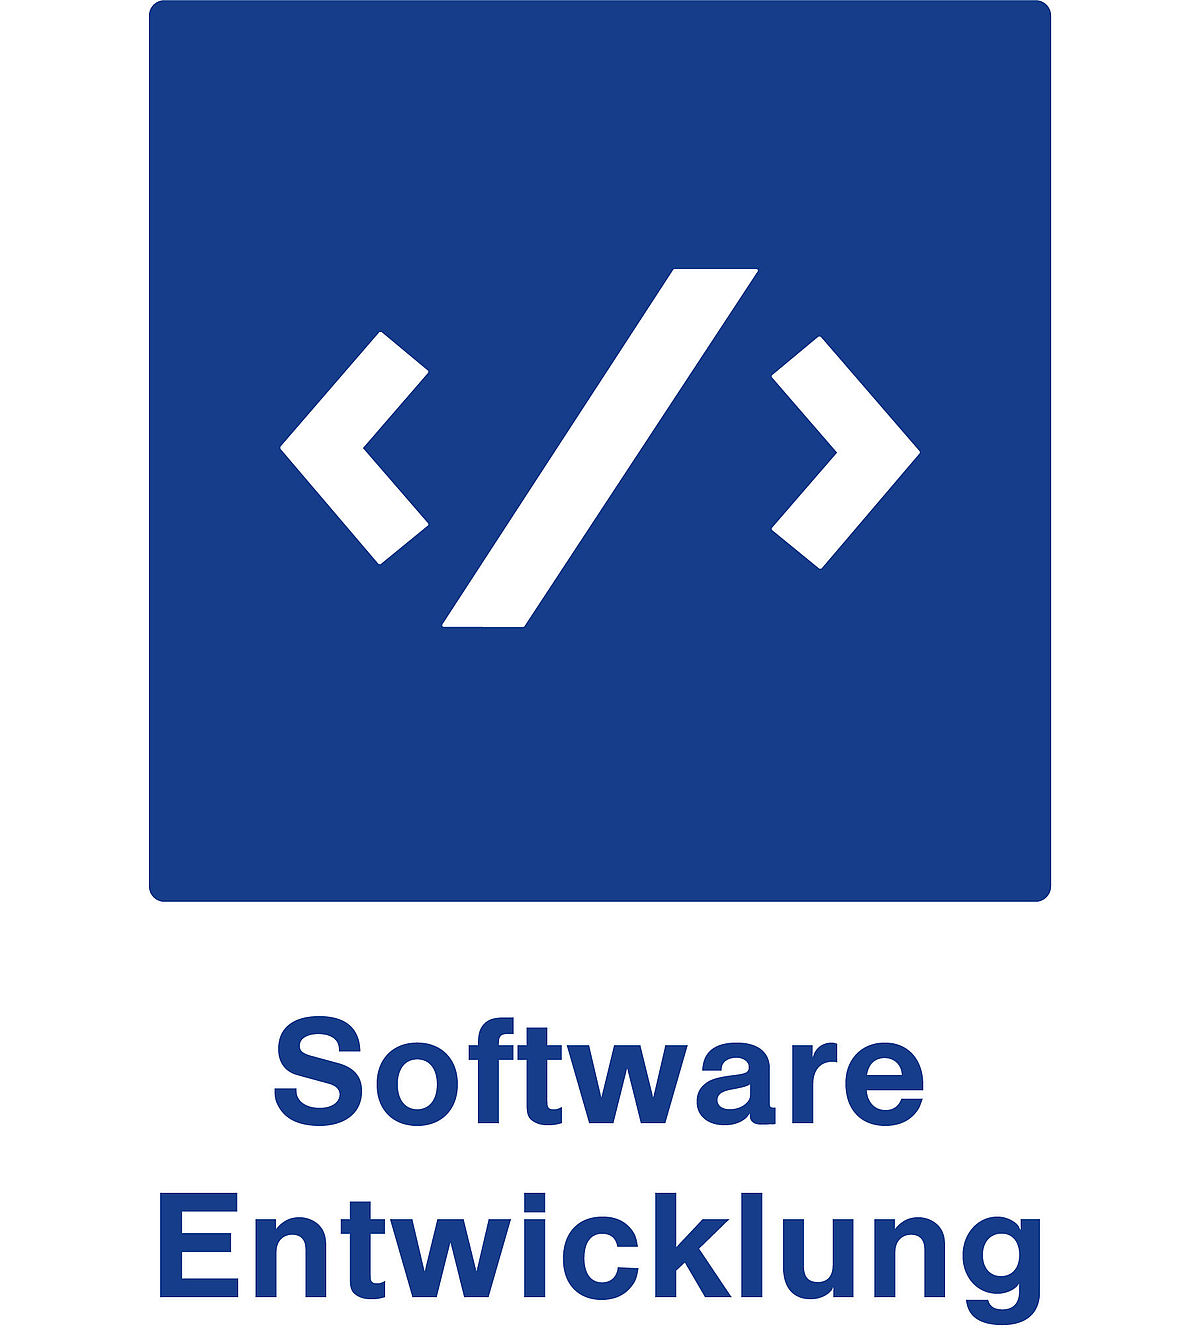 Softwareentwicklung Icon